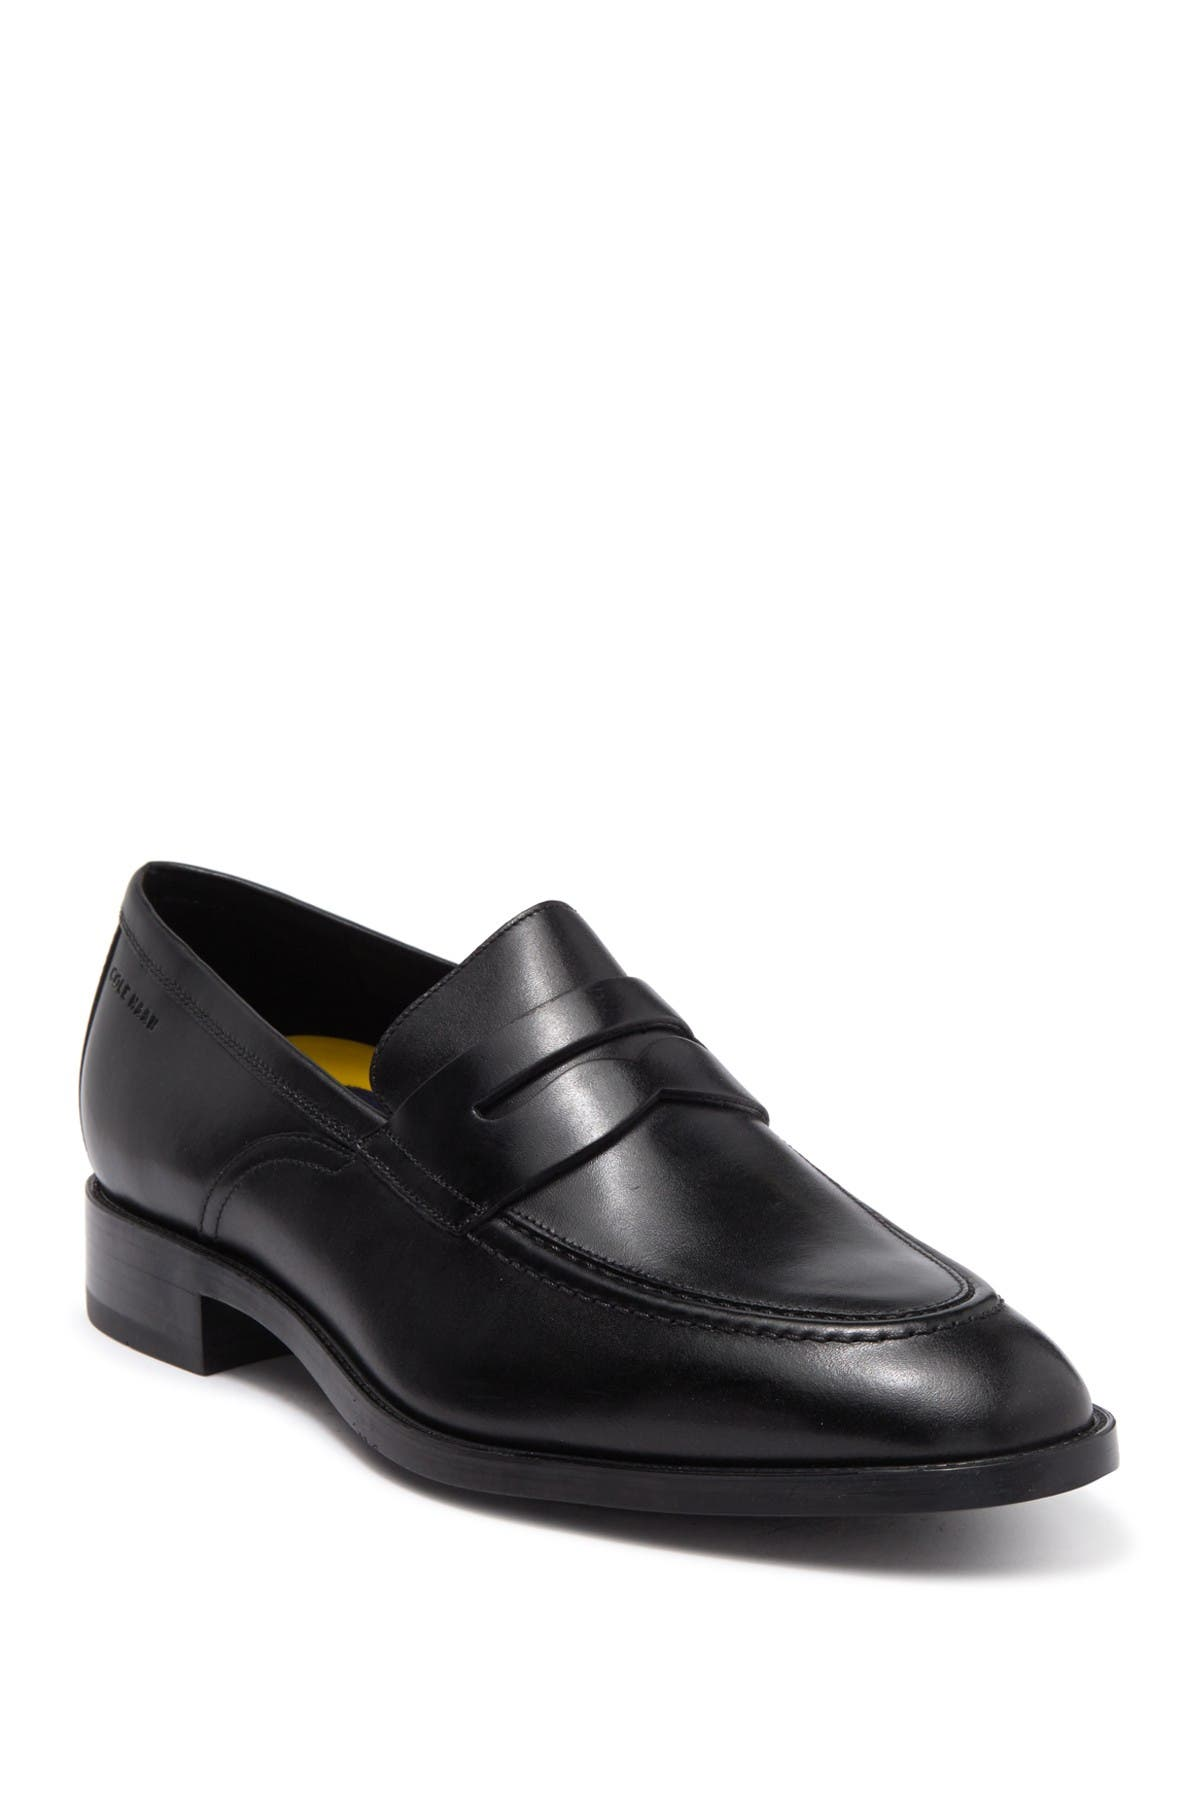 Image of Cole Haan Hawthorne Penny Loafer